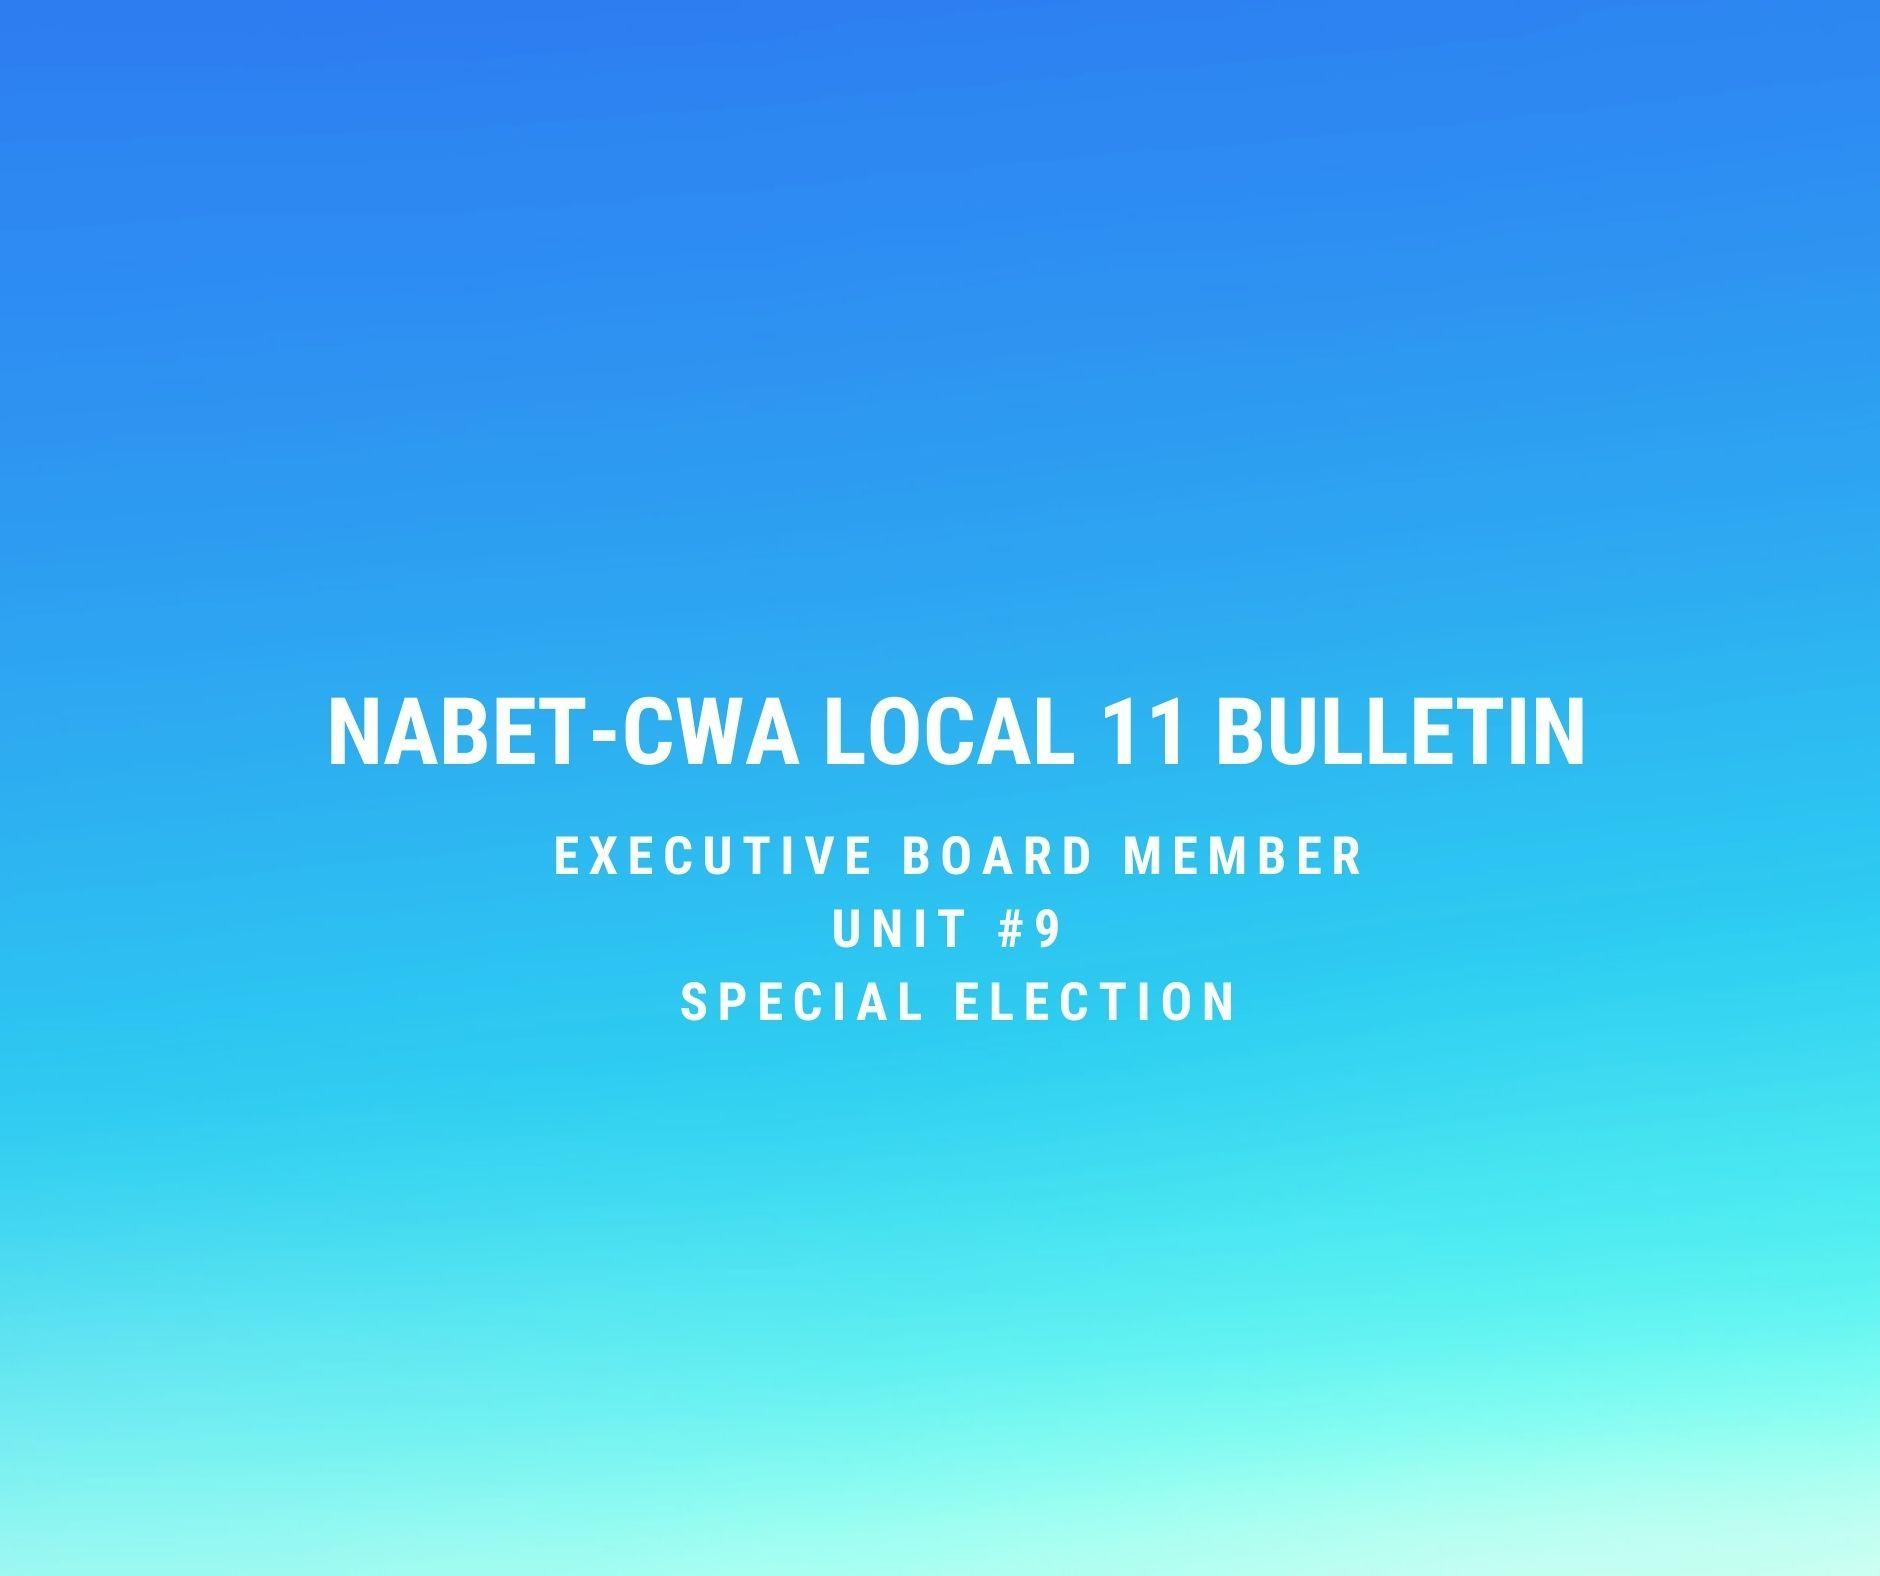 Special Election for Executive Board Member Unit #9